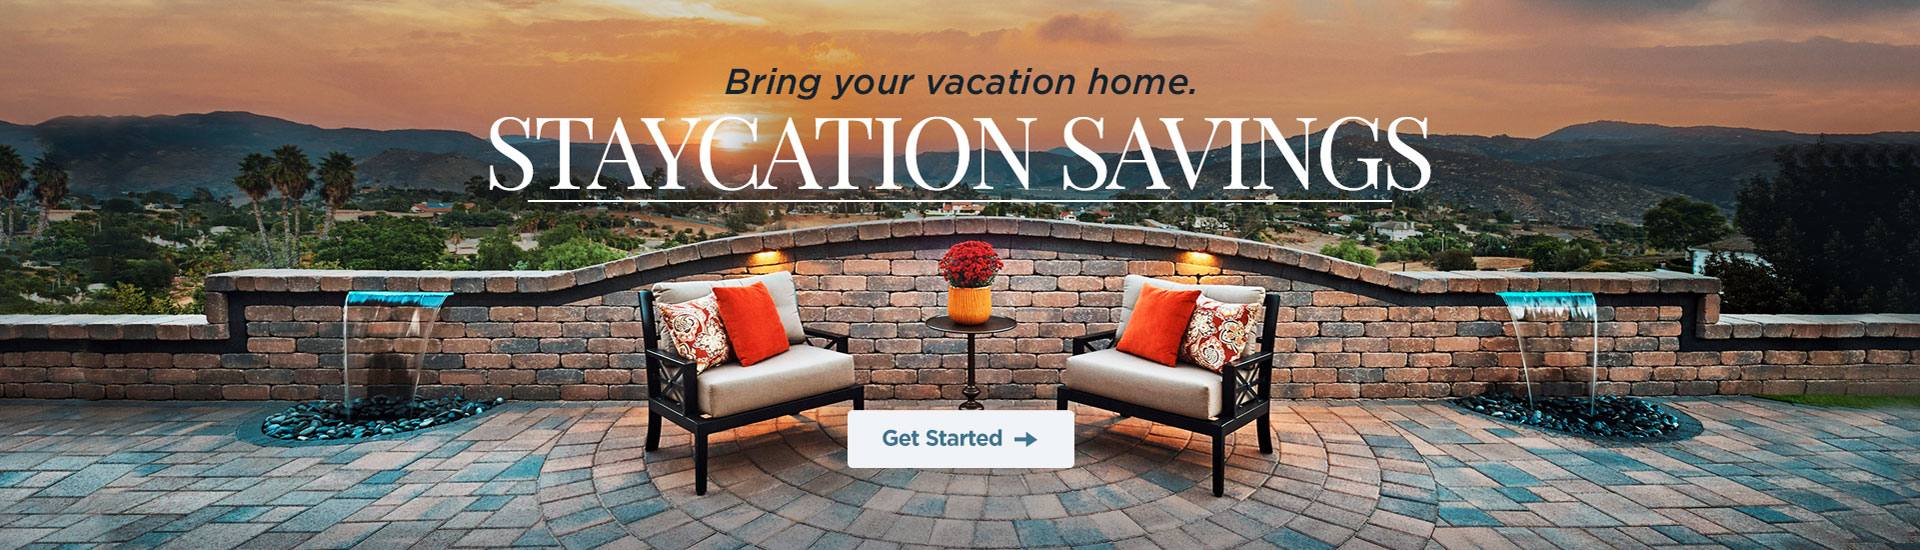 Staycation Savings